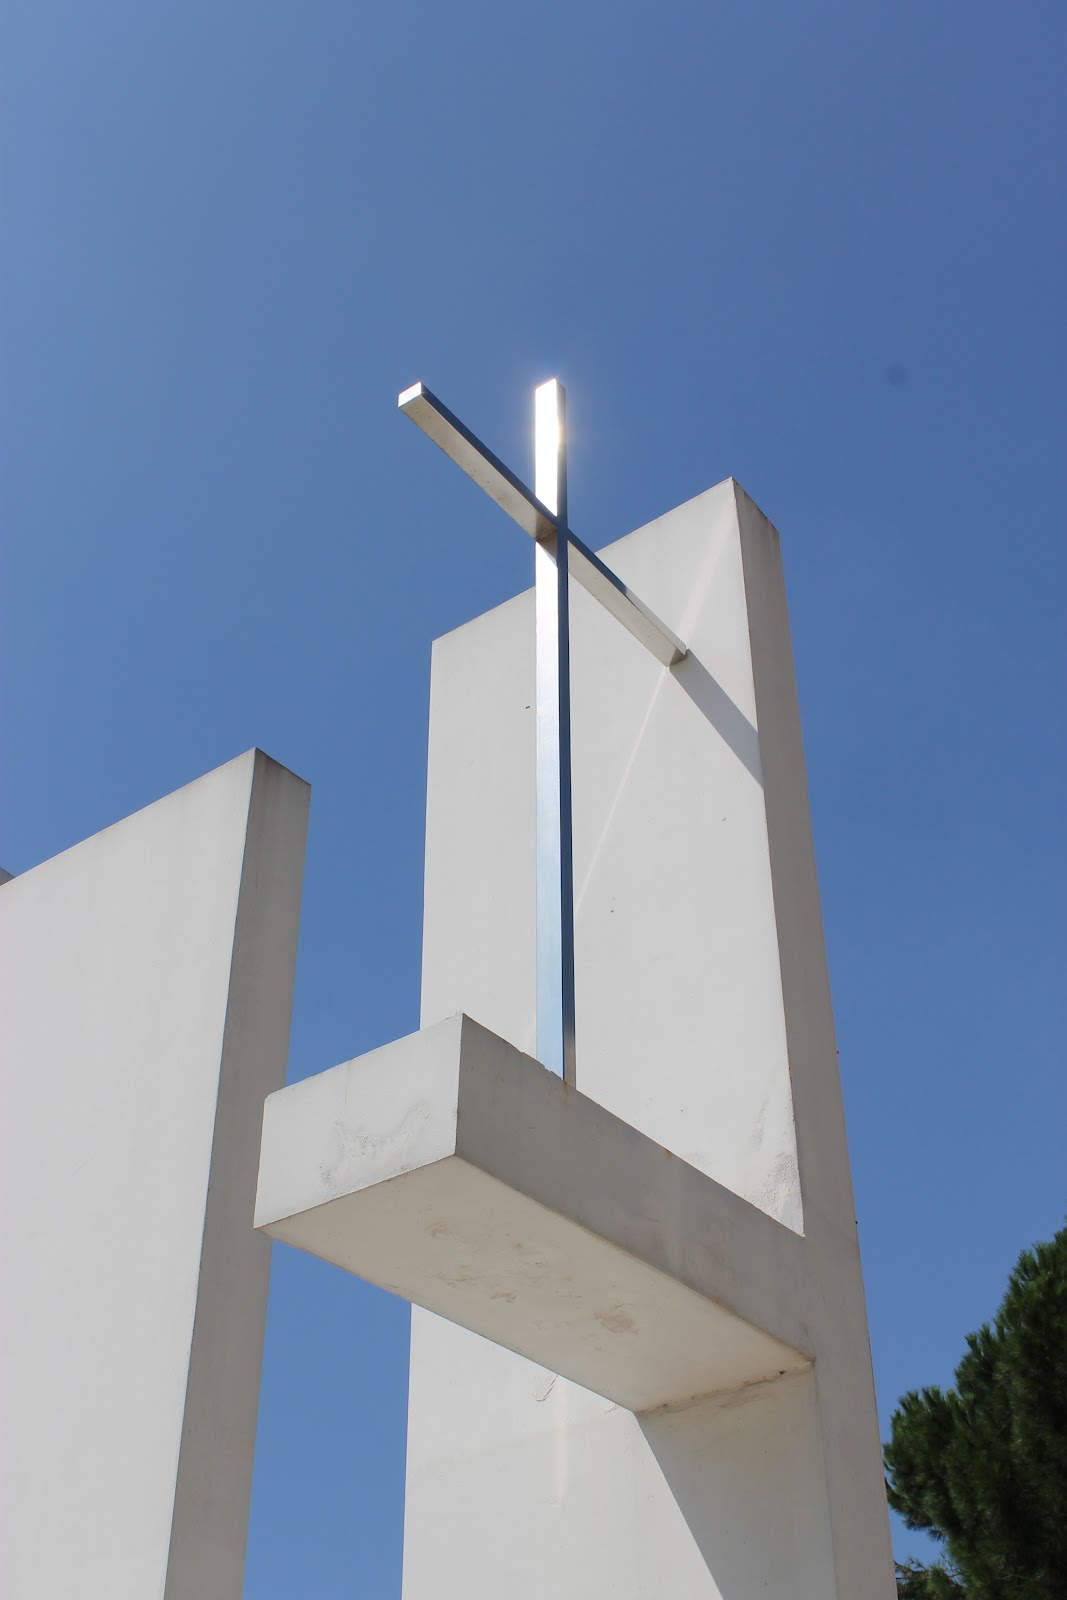 Blondes in milan rome and its modern architecture the parisch church of dio padre misericordioso built as part of the vicarage project 50 churches for rome 2000 was designed as a mark and symbol of the biocorpaavc